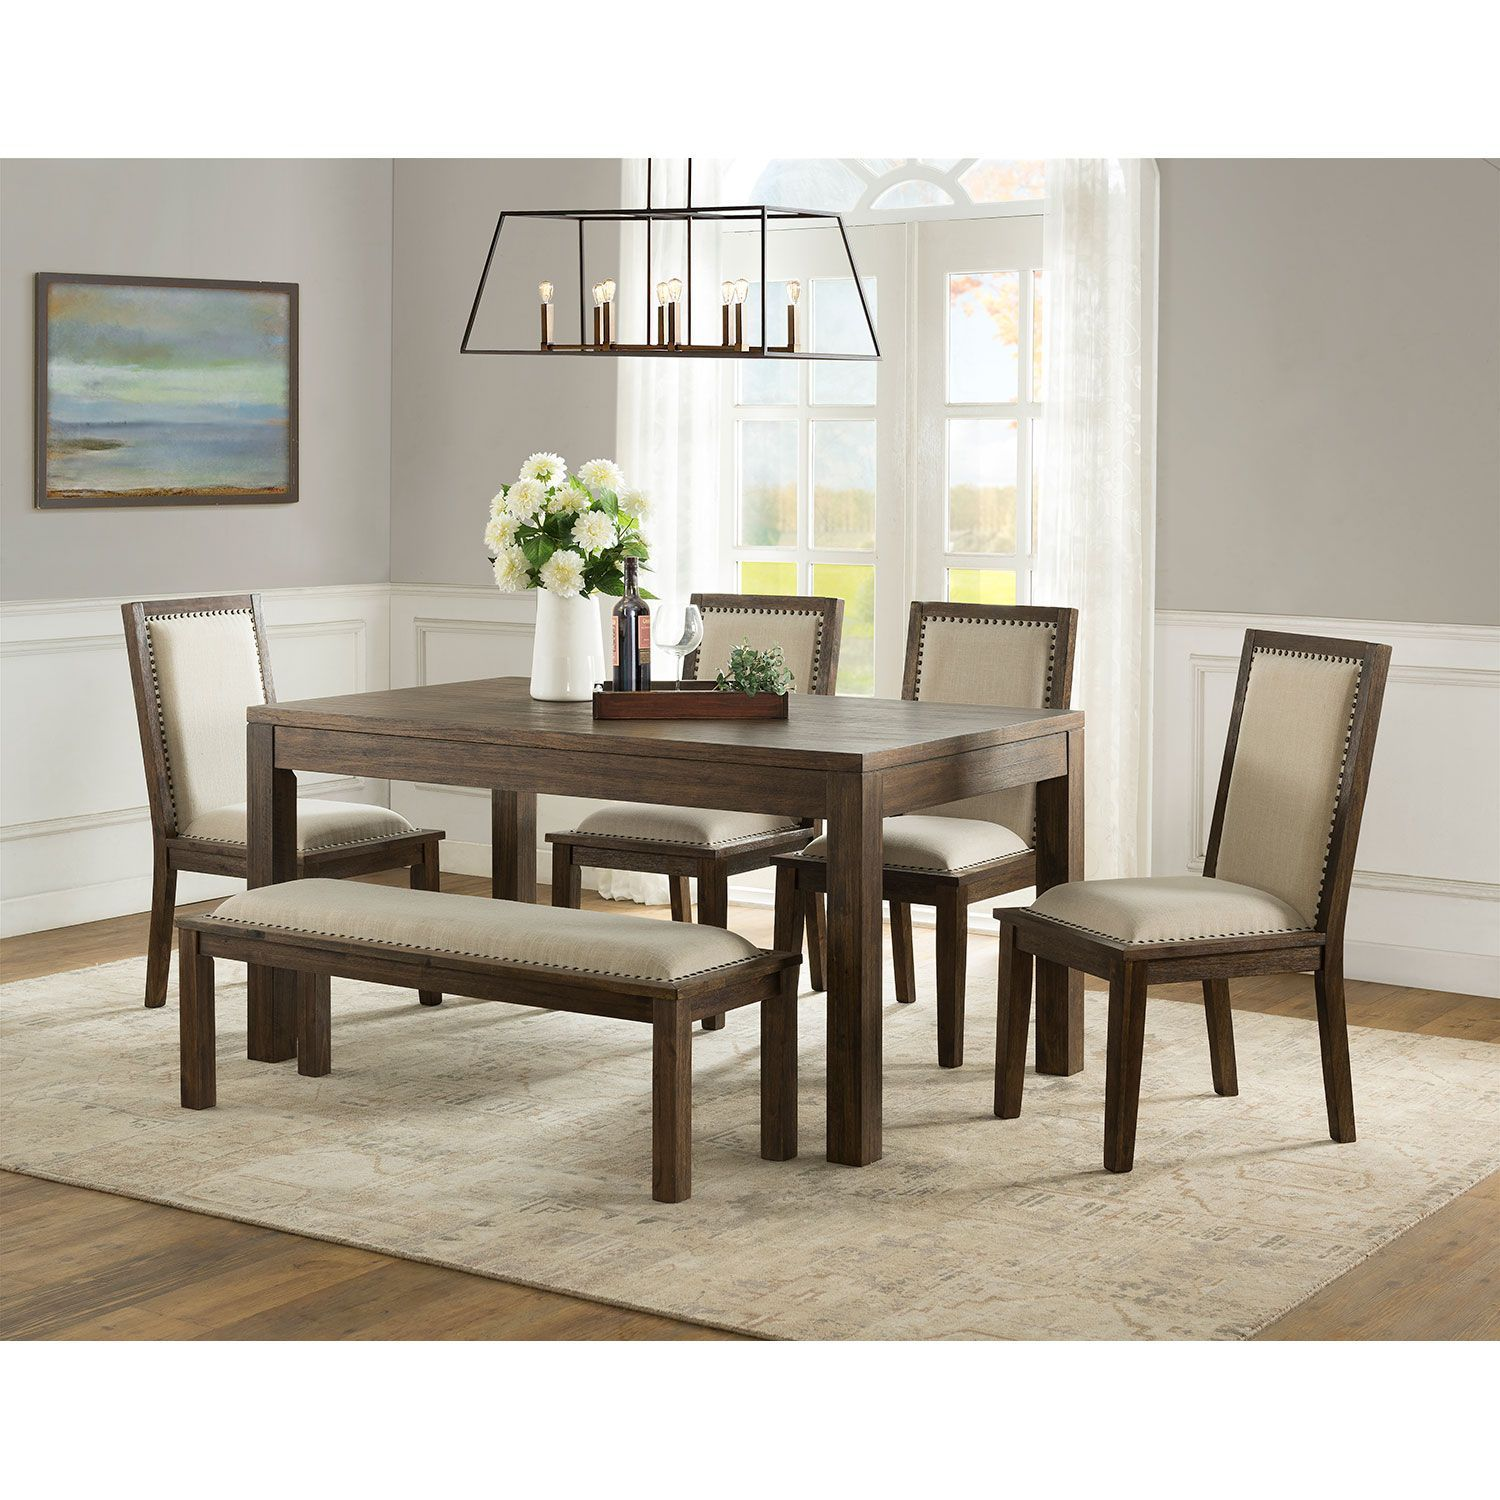 Hayden 6 Piece Dining Set With Bench Sam S Club Dining Set With Bench Furniture Dining Room Sets #sams #living #room #furniture